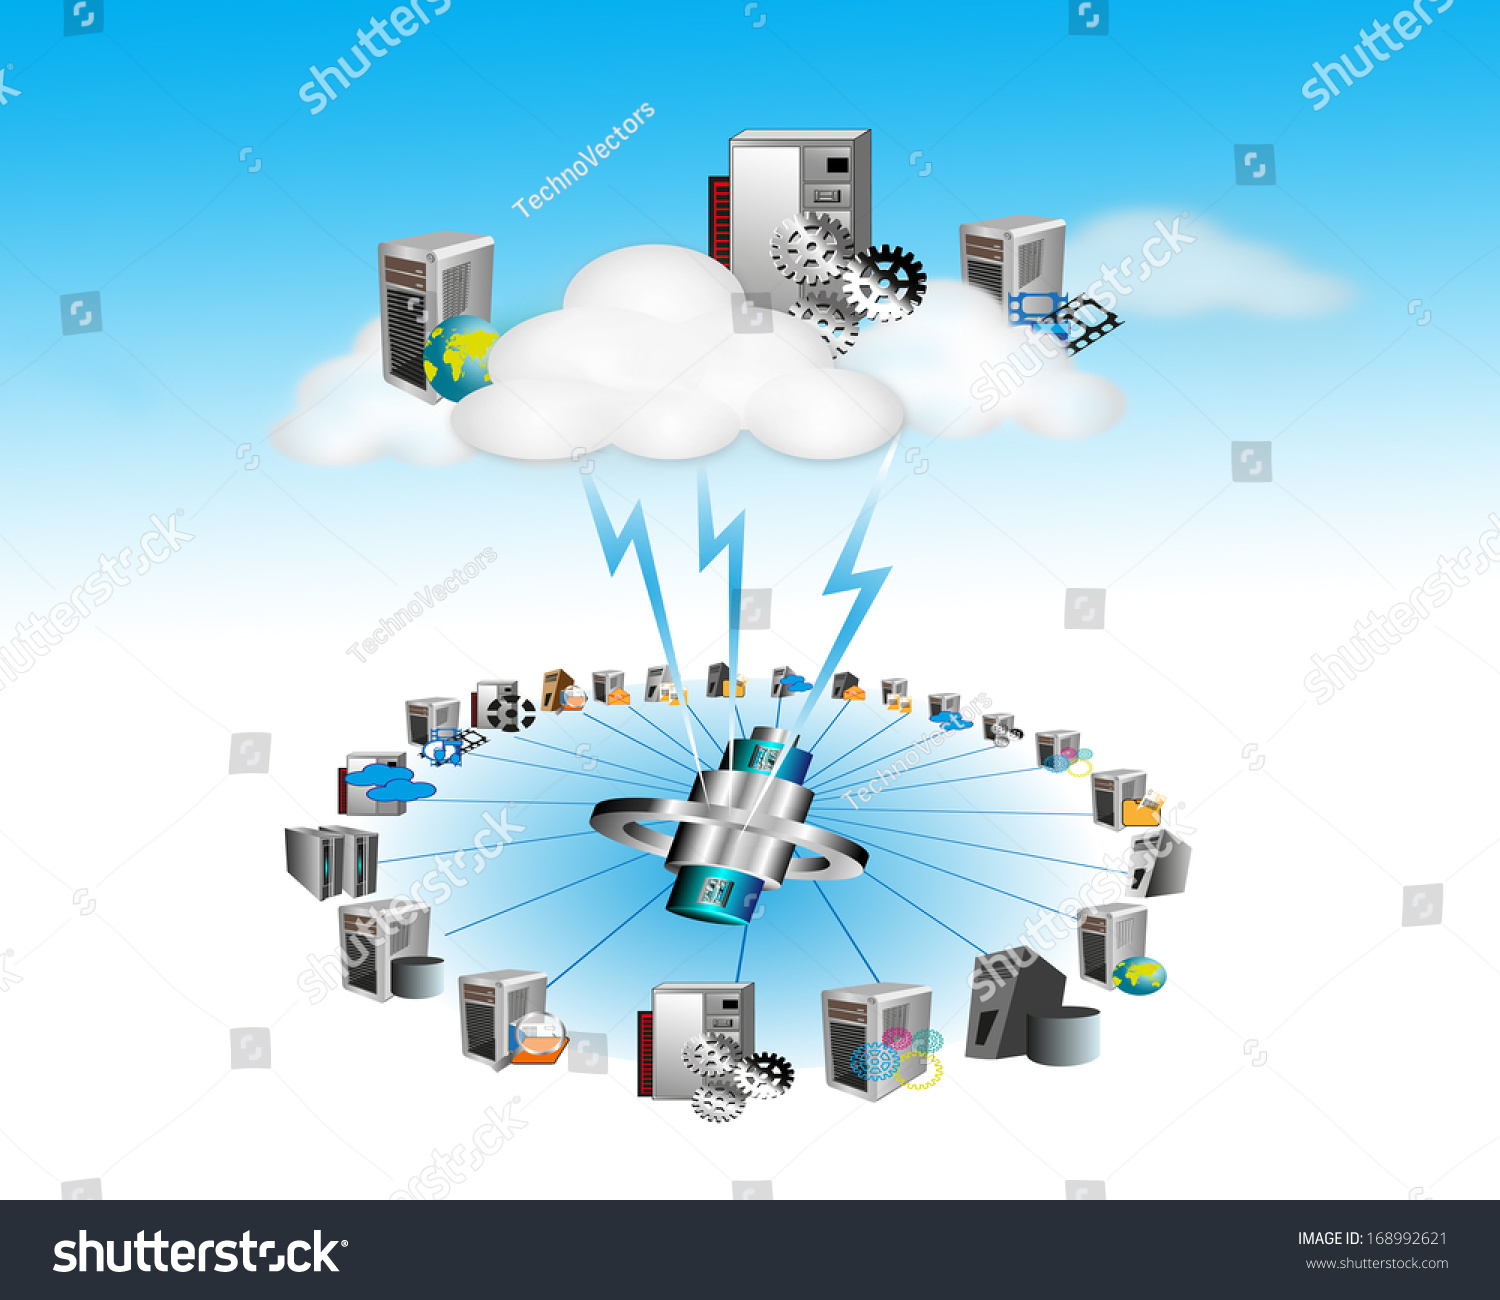 Networking Cloud Computing: Cloud Computing Network On A Blue Cloud Background Stock